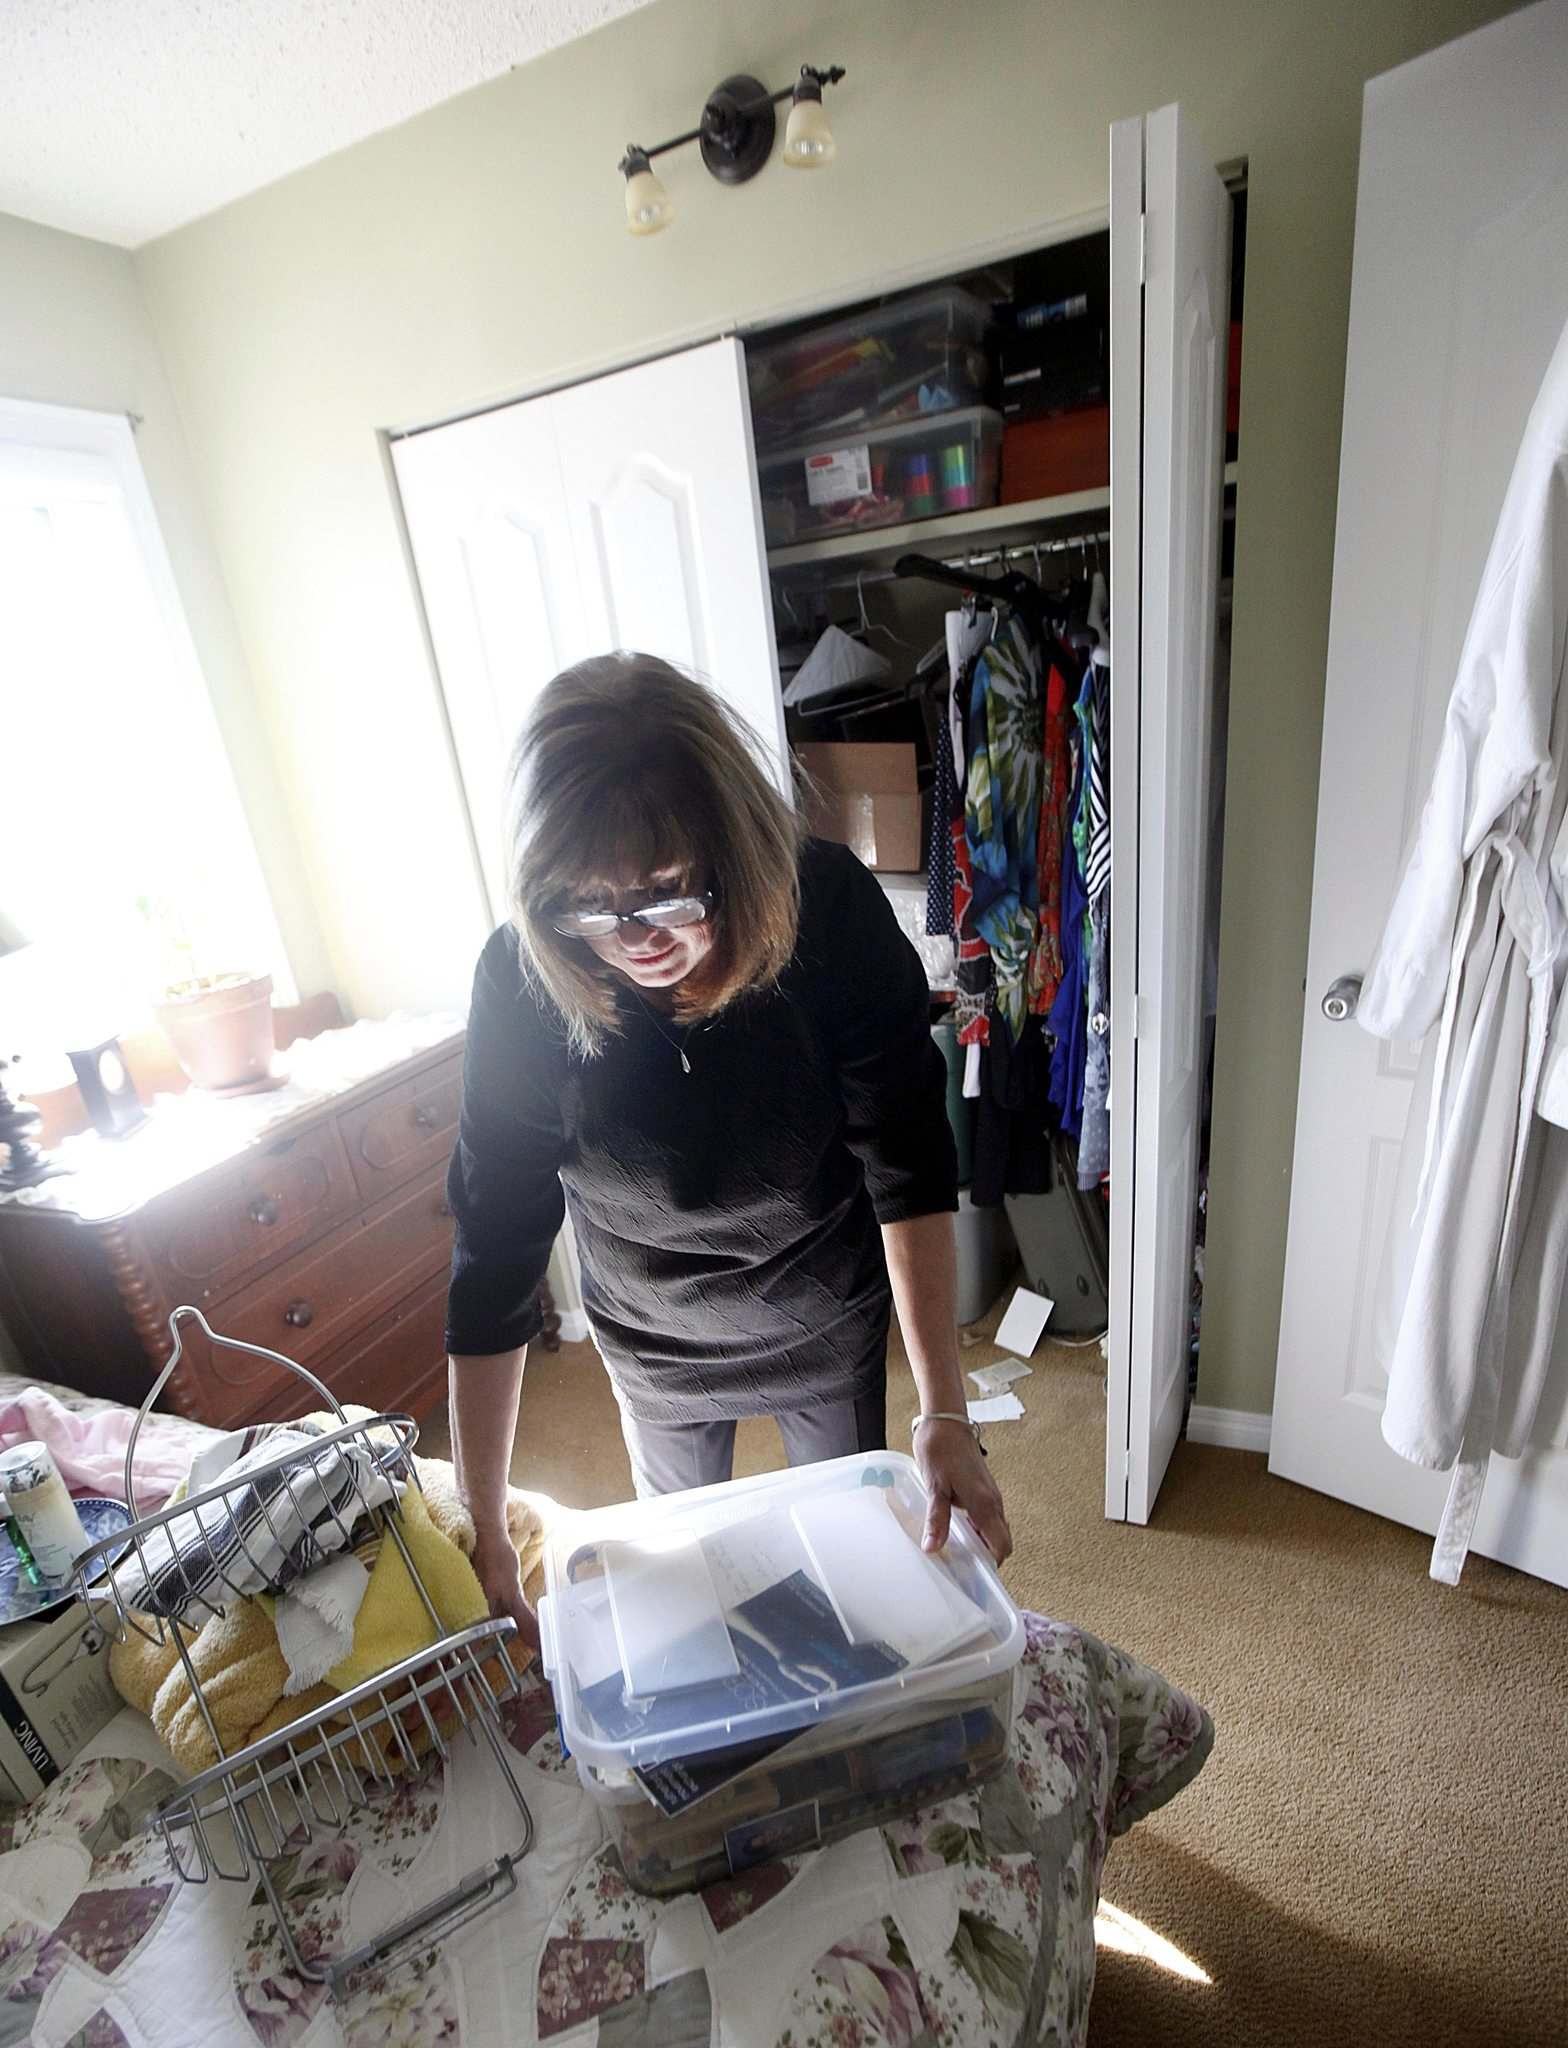 <p>Anne Oake pulls a tupperware container full of her son Bruce's memorabilia from a bedroom closet. (Phil Hossack / Winnipeg Free Press)</p>